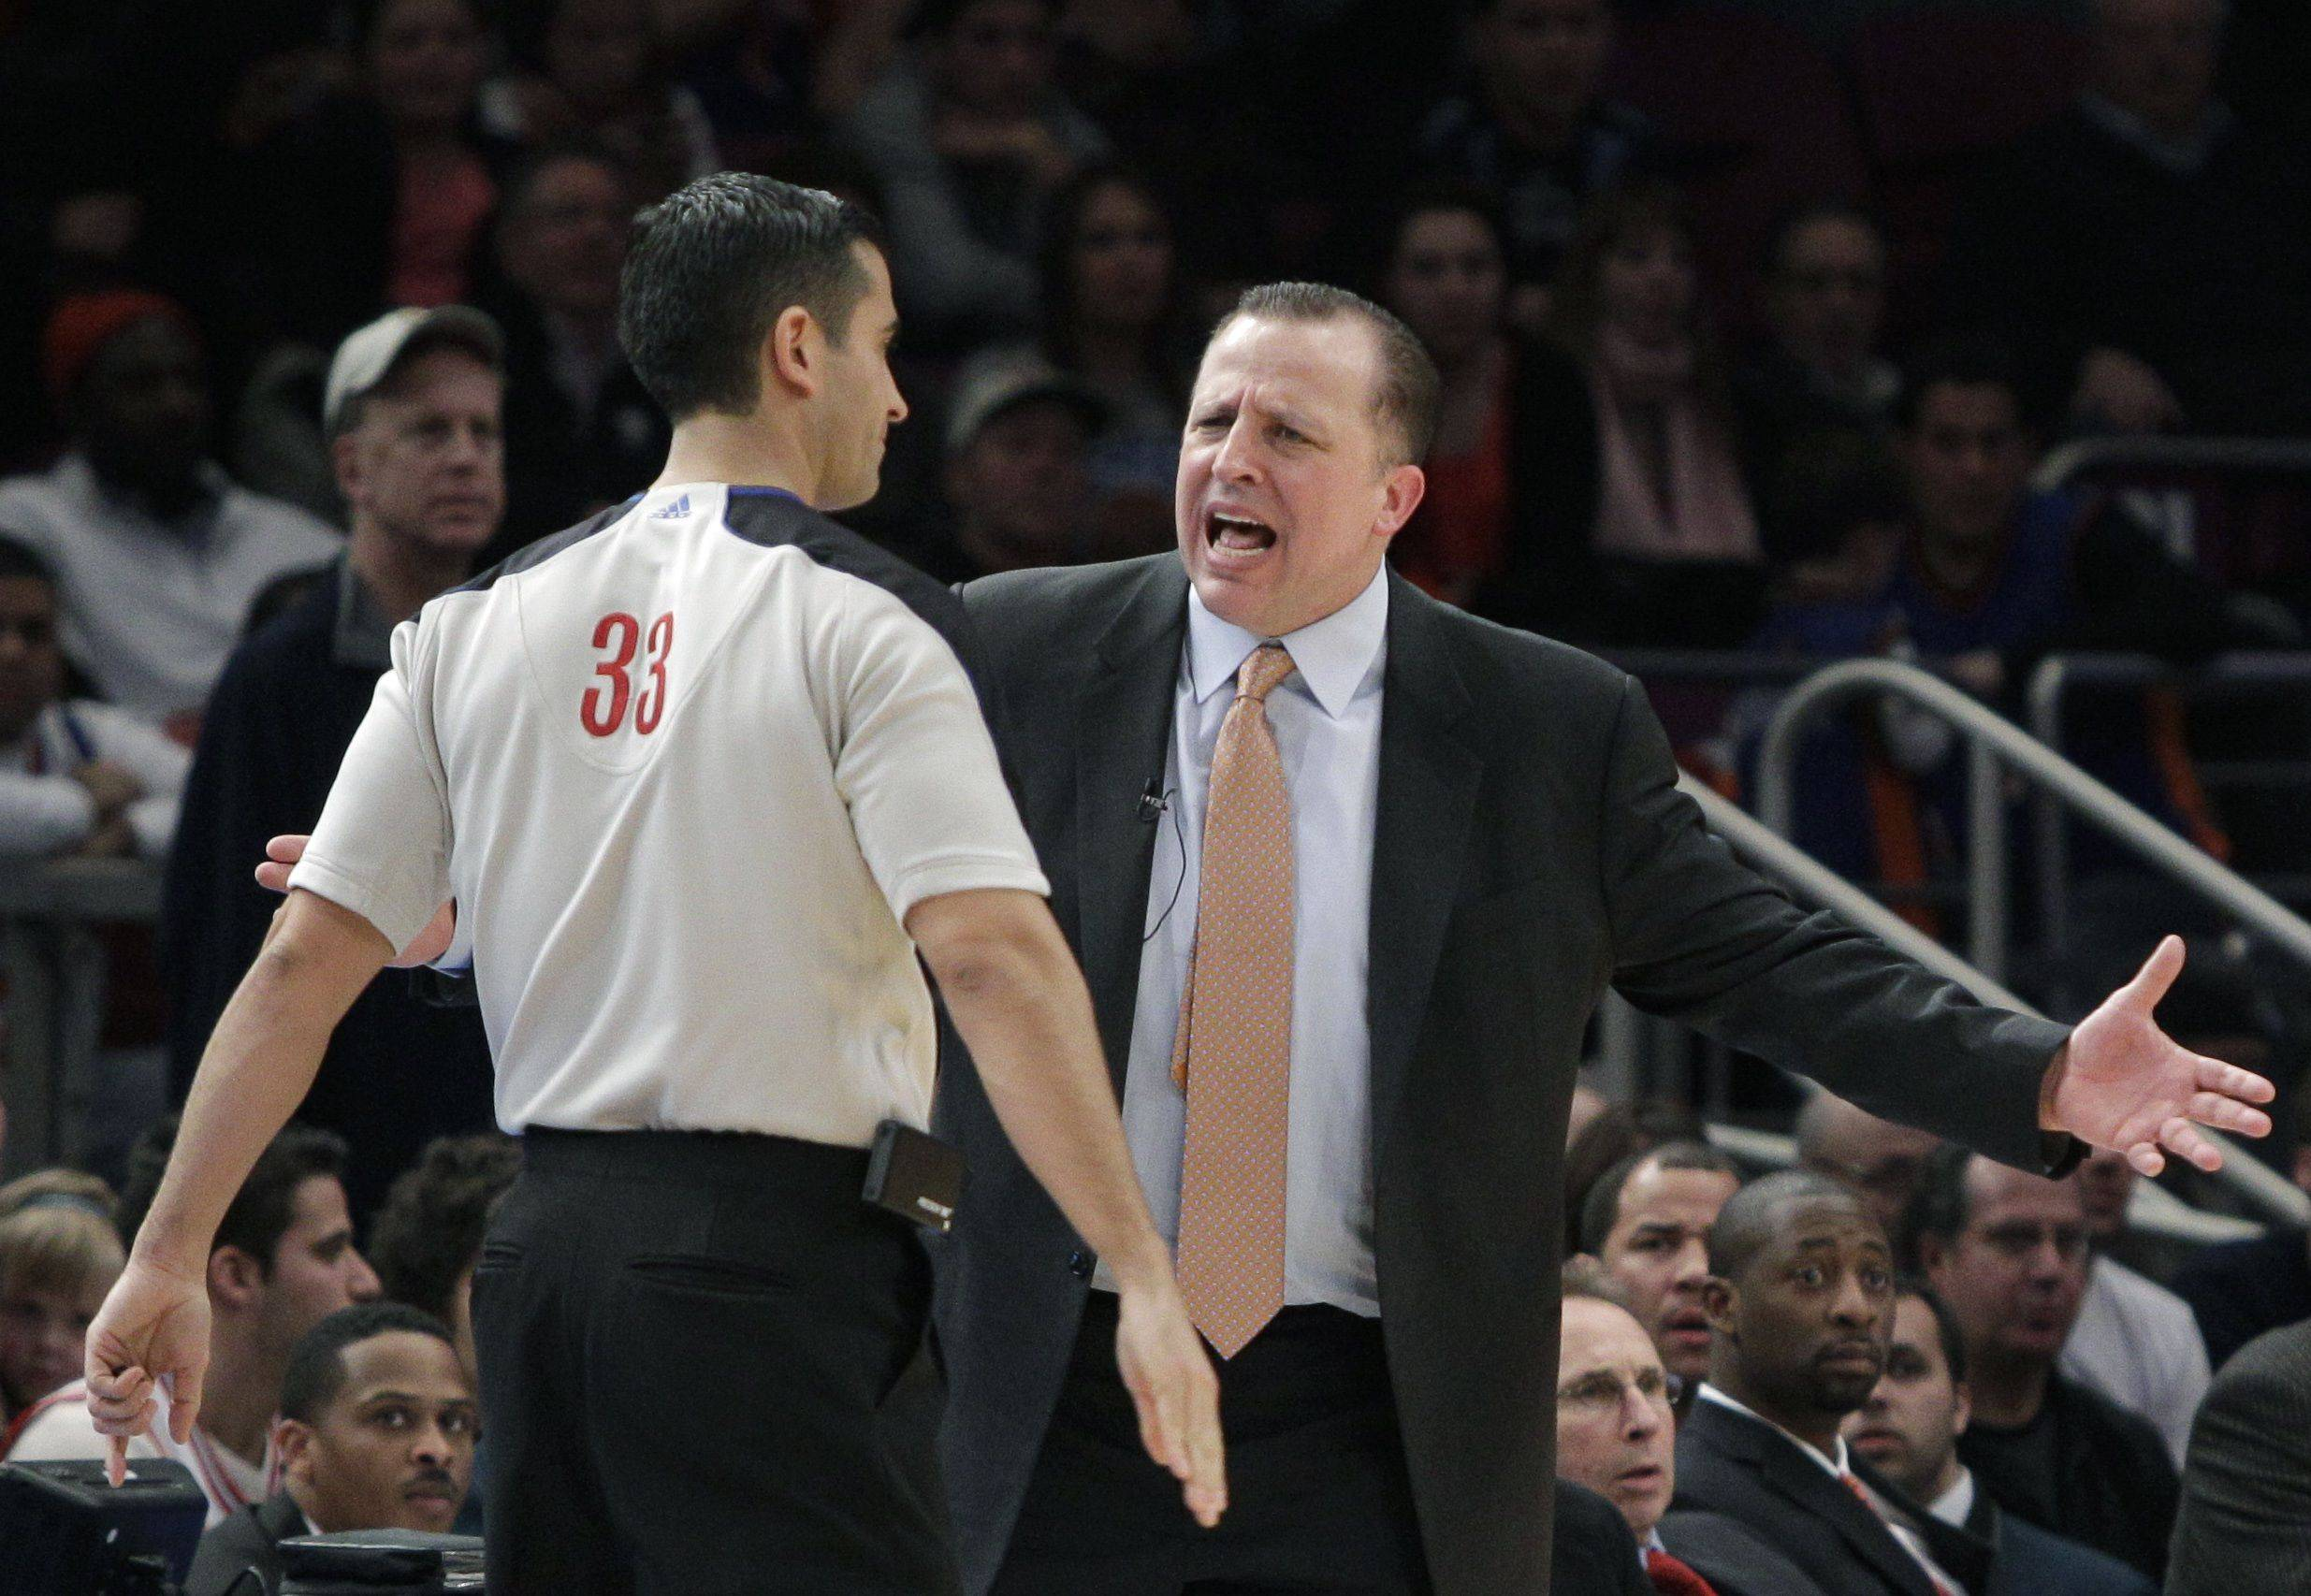 Chicago Bulls head coach Tom Thibodeau complains to referee Sean Corbin in the second half of the Bulls 103-95 loss to the New York Knicks.